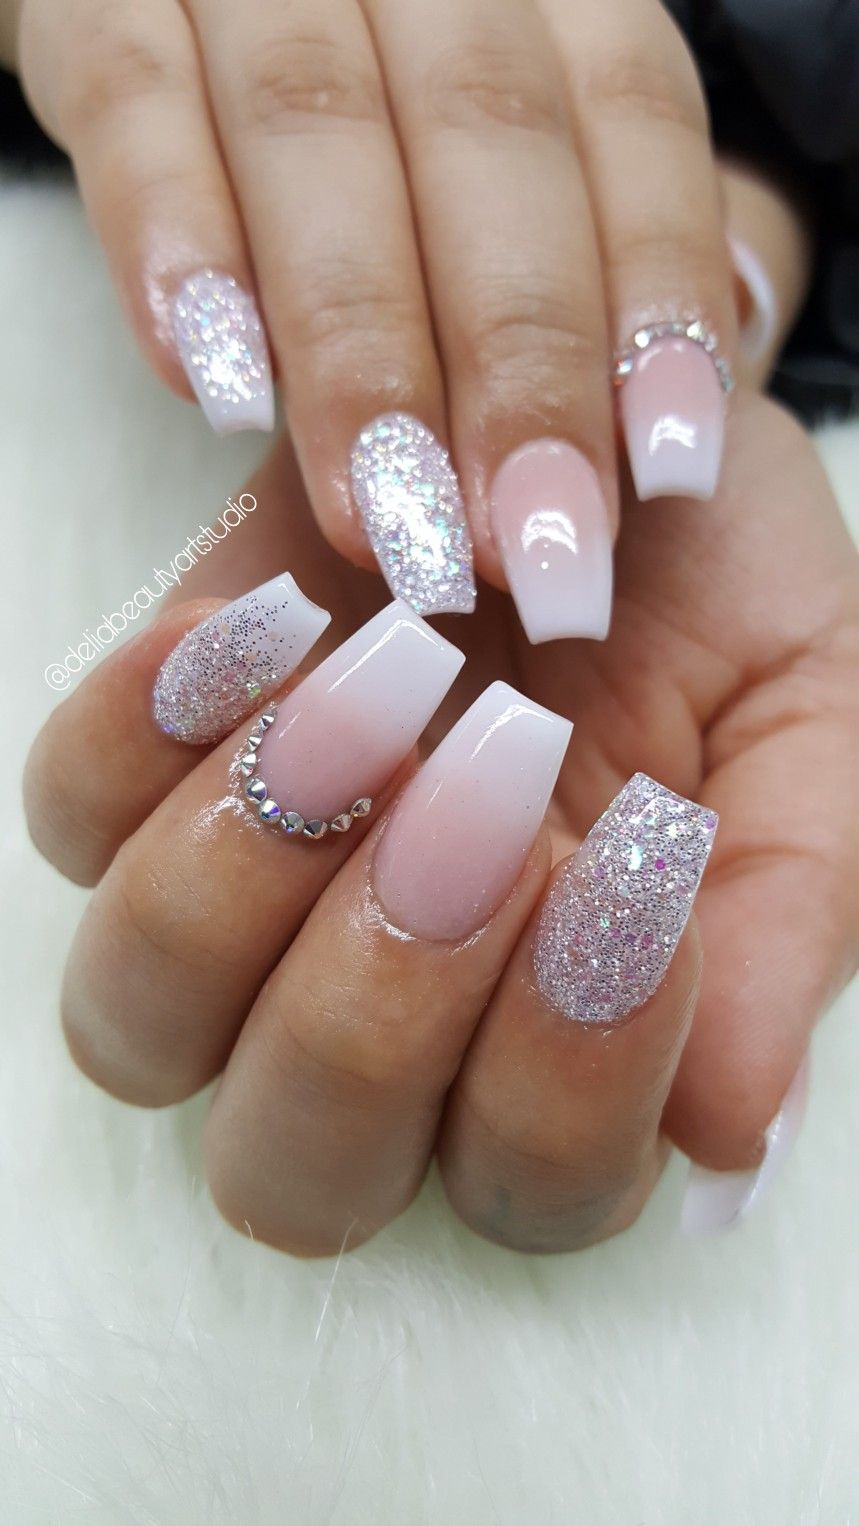 Ombre Acrylic Nails Image By Gaby Lozano On I 3 Makeup Pink Glitter Nails Coffin Shape Nails